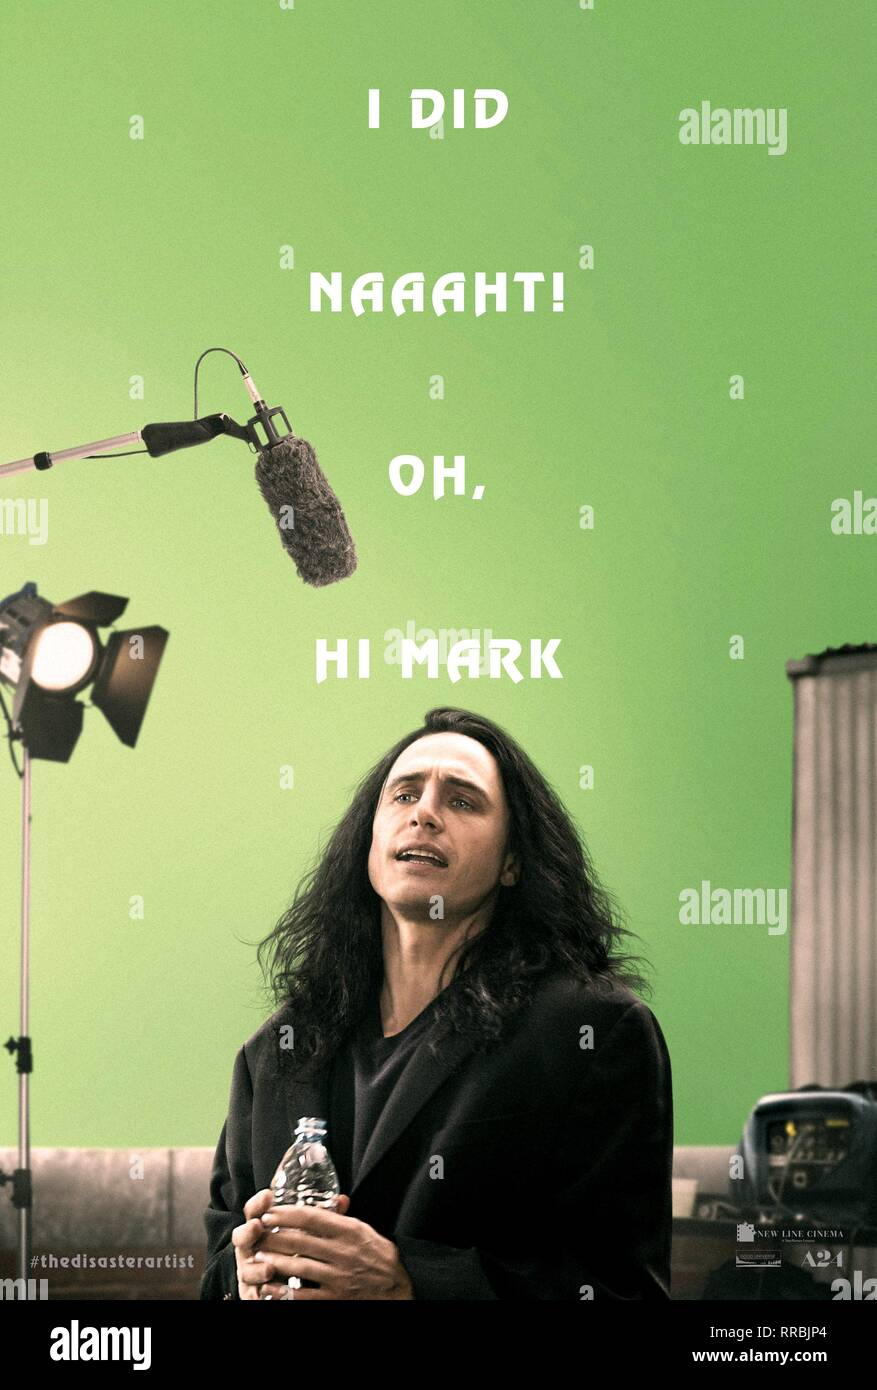 THE DISASTER ARTIST, JAMES FRANCO POSTER, 2017 - Stock Image